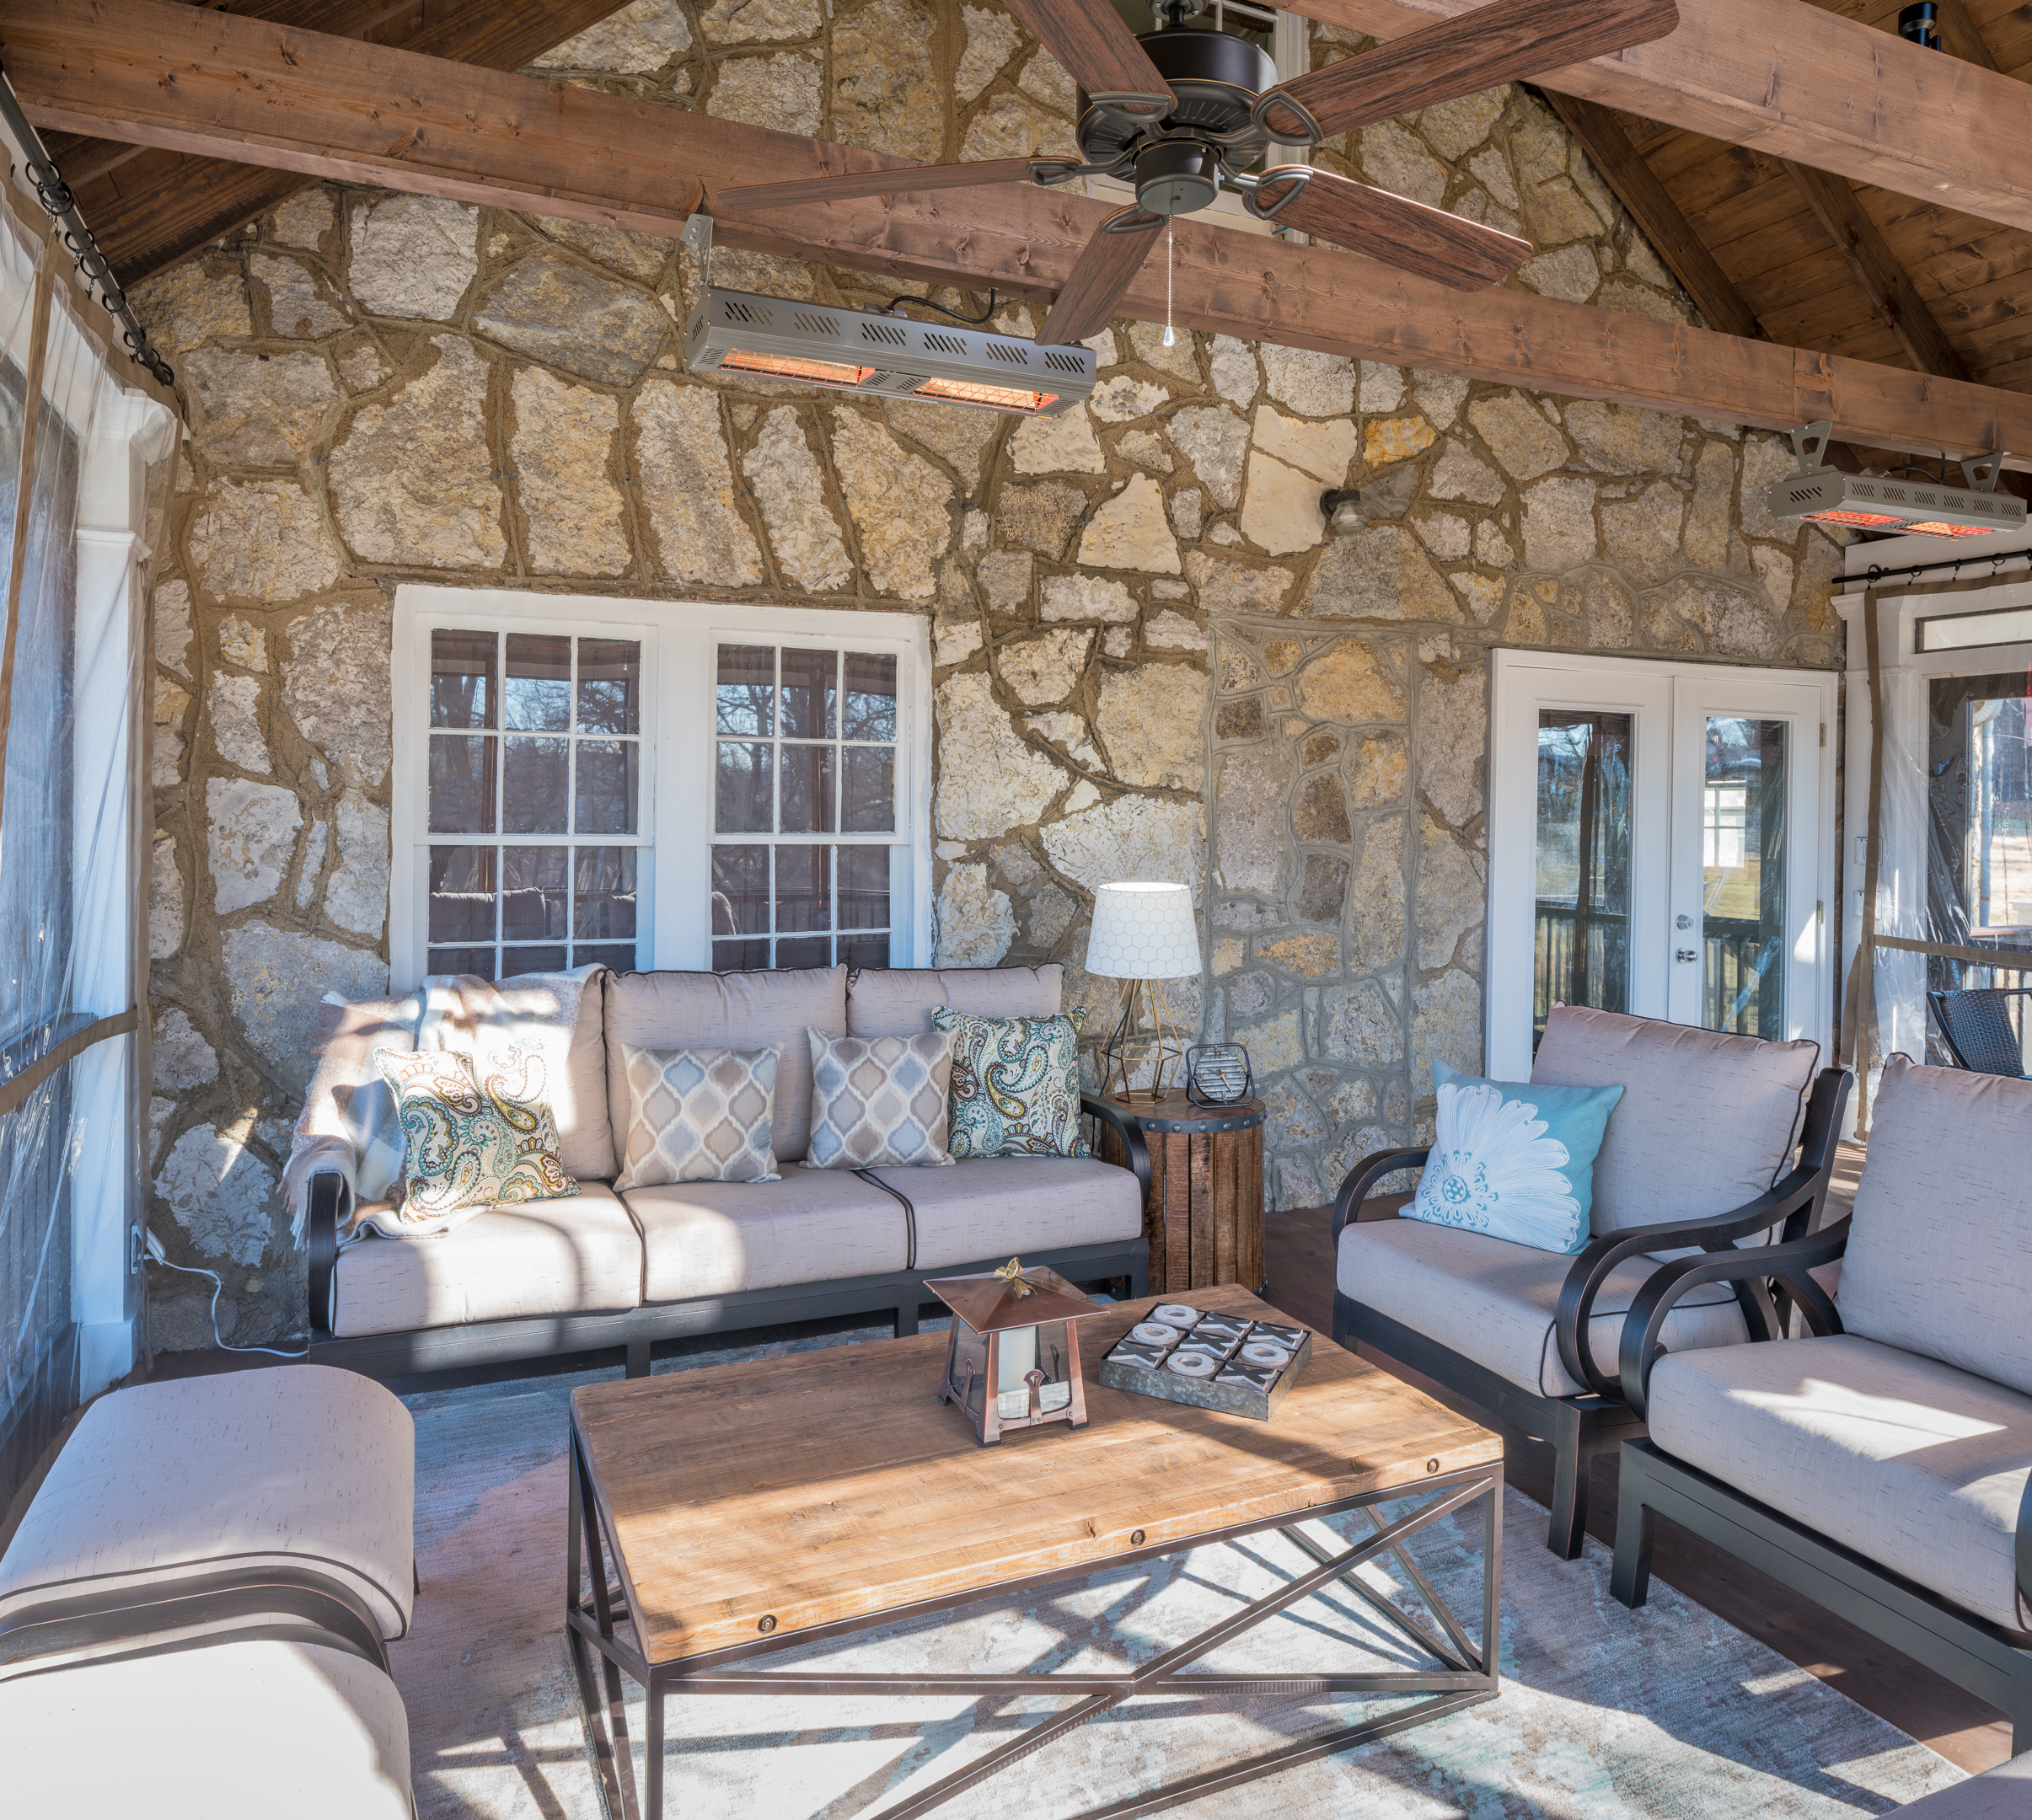 Screened Porch Exposed Beams : Why nashvillians love porches living the porch